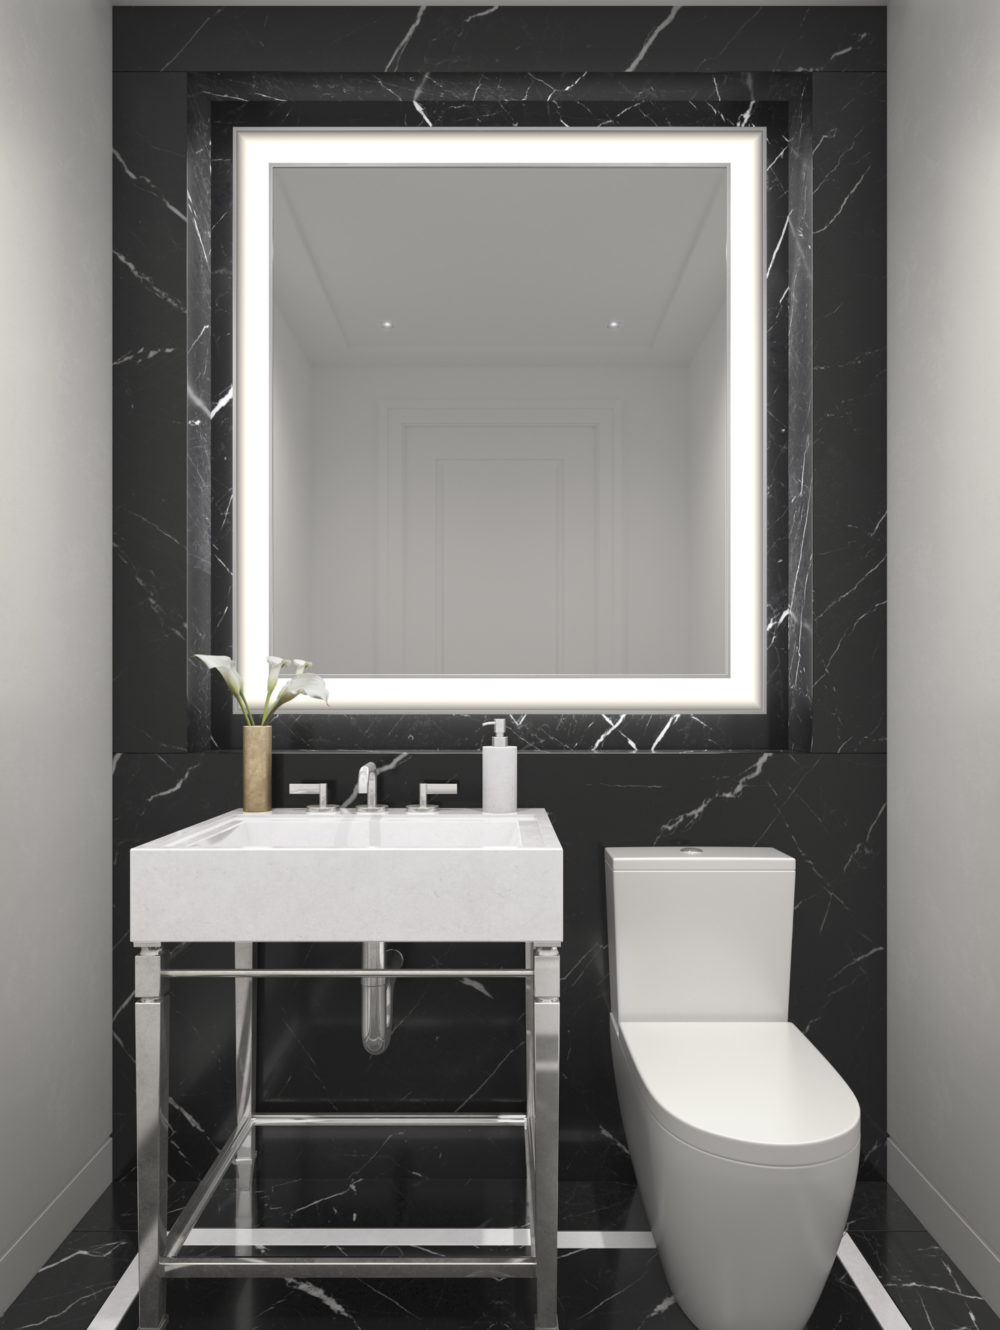 Powder room in The Belnord apartments in New York City. White sink and toilet with a large mirror and black floors and wall.